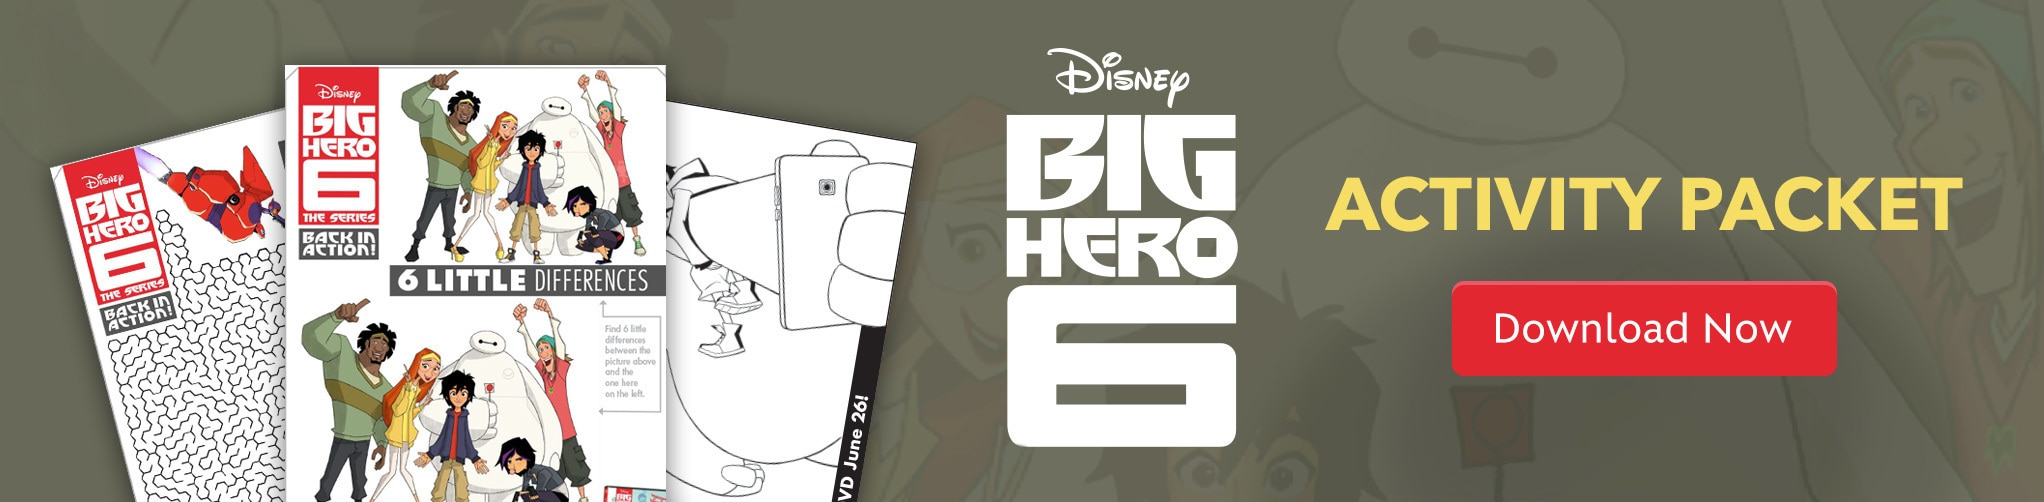 Disney Big Hero 6 Activity Packet - Download Now